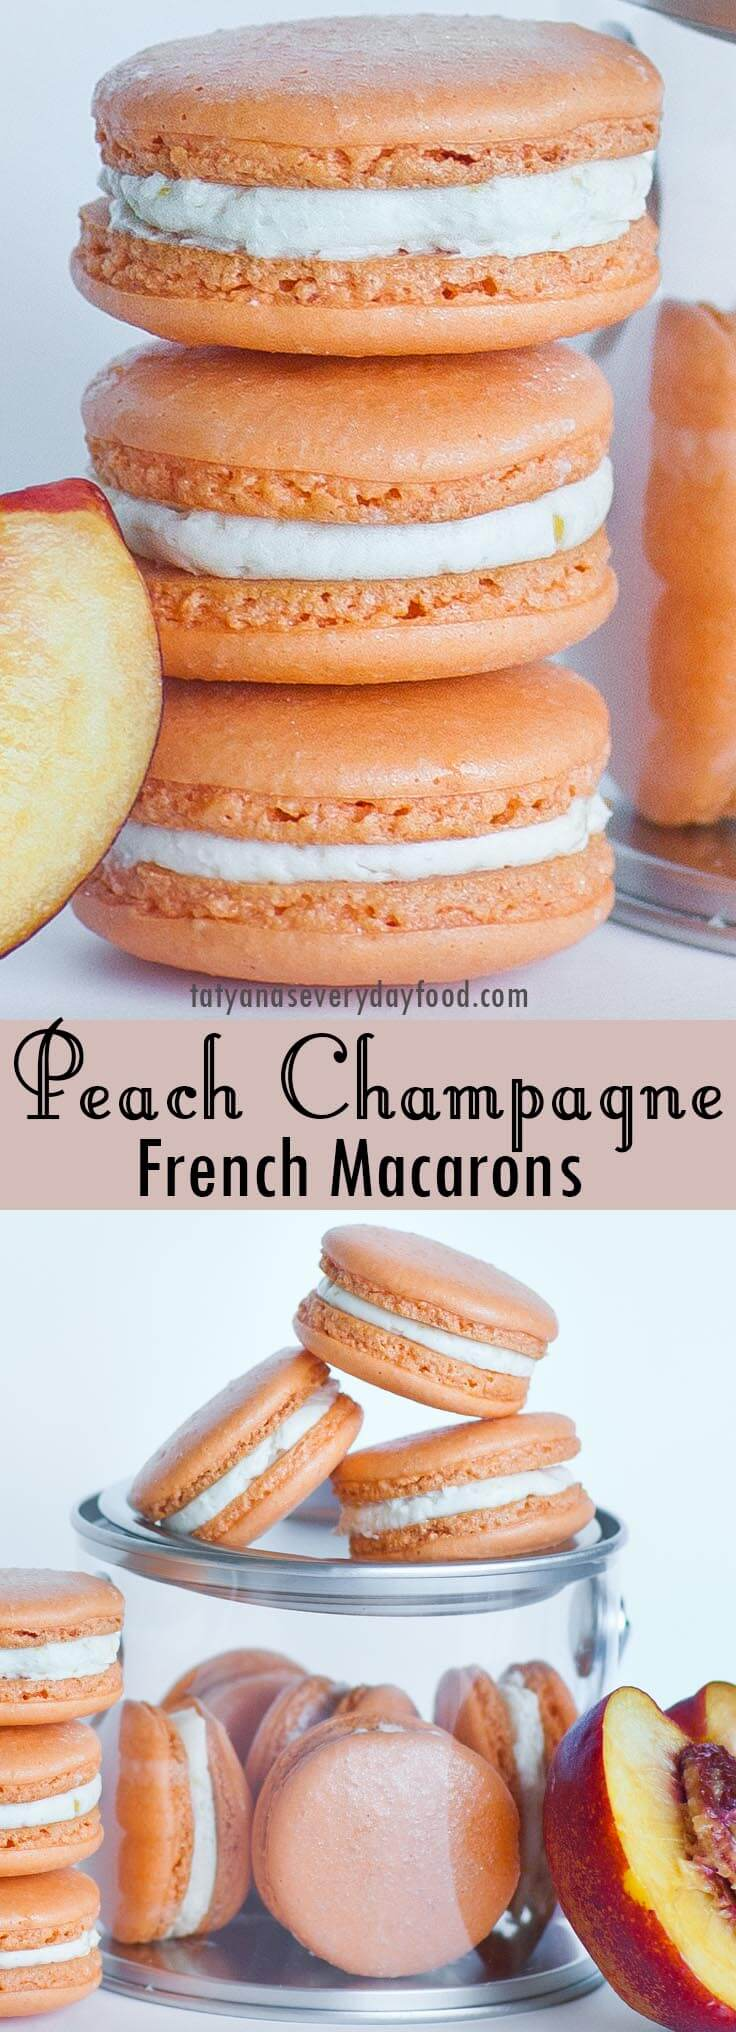 Champagne Peach Macarons video recipe